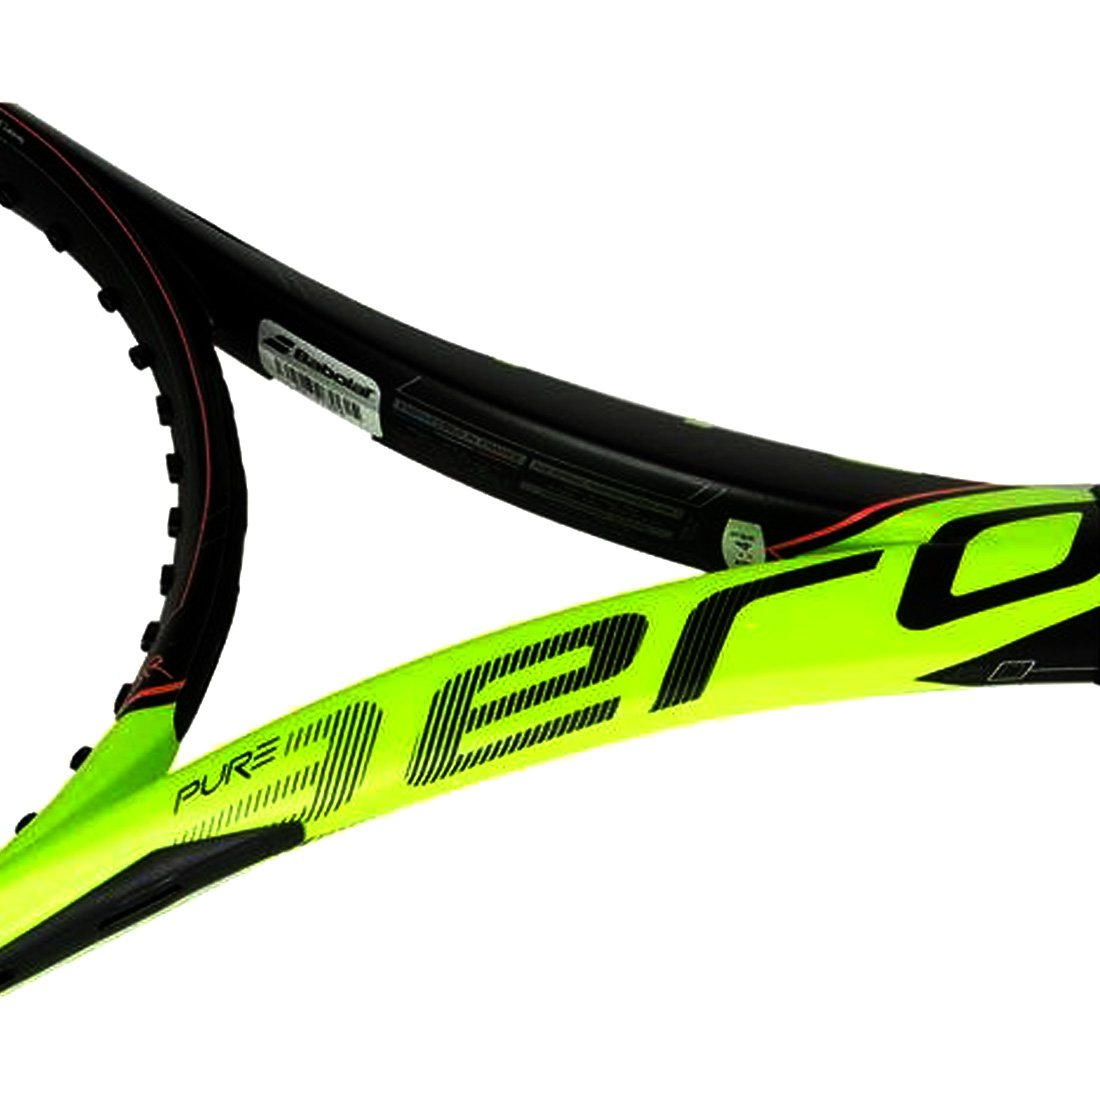 Amazon.com : Babolat-Pure Aero Tour Tennis Racquet-() : Sports & Outdoors